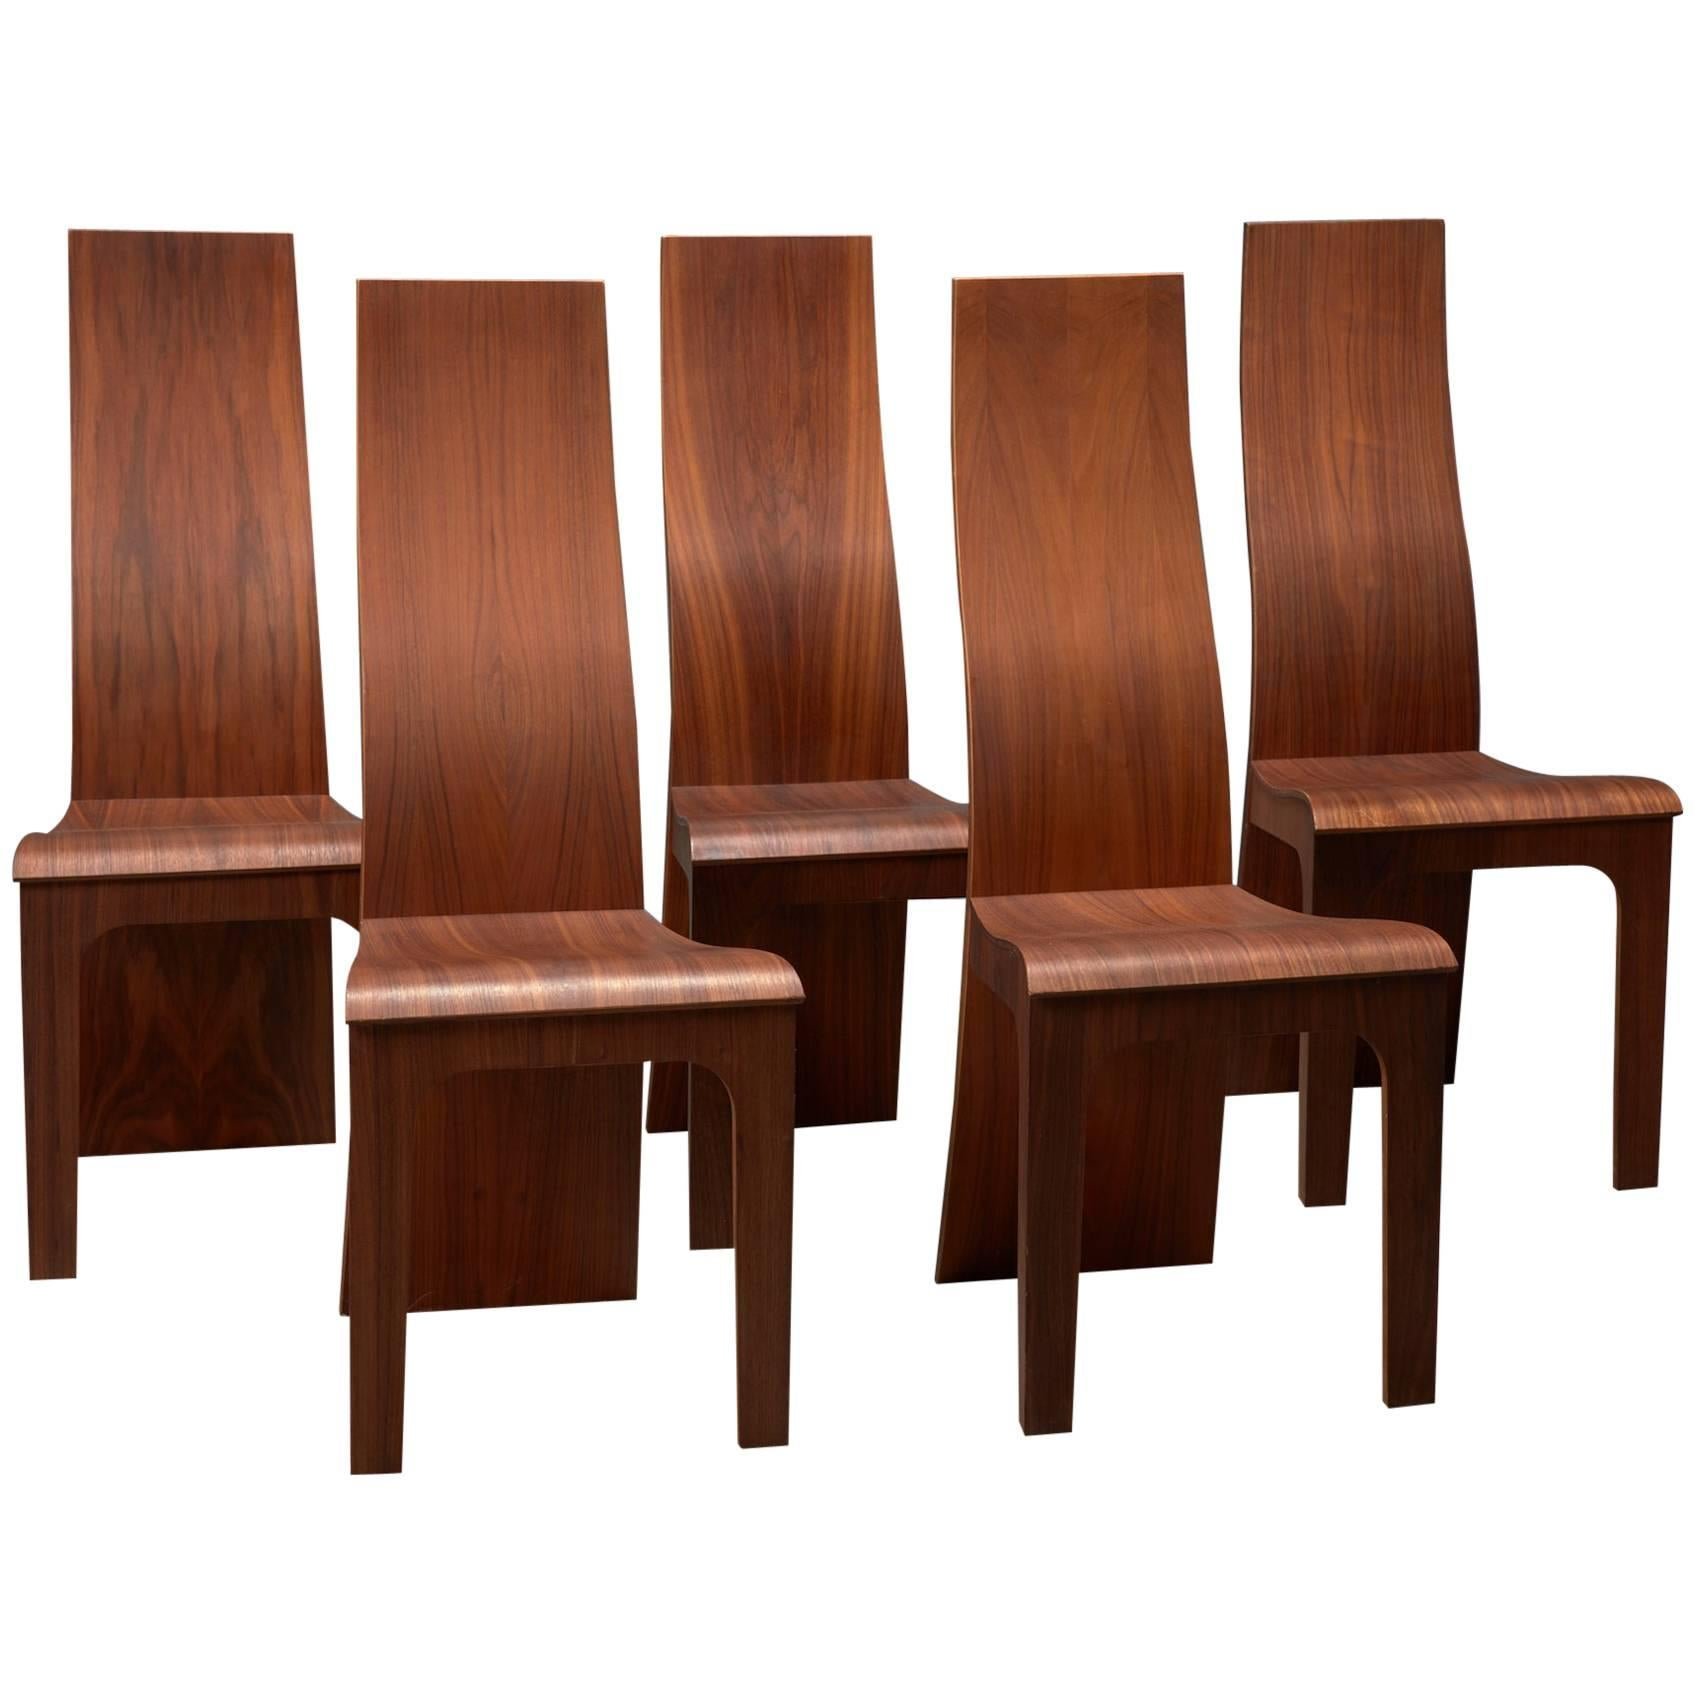 Set Of Five High Back Rosewood Bent Plywood Chairs By Hans Karlsson For Sale